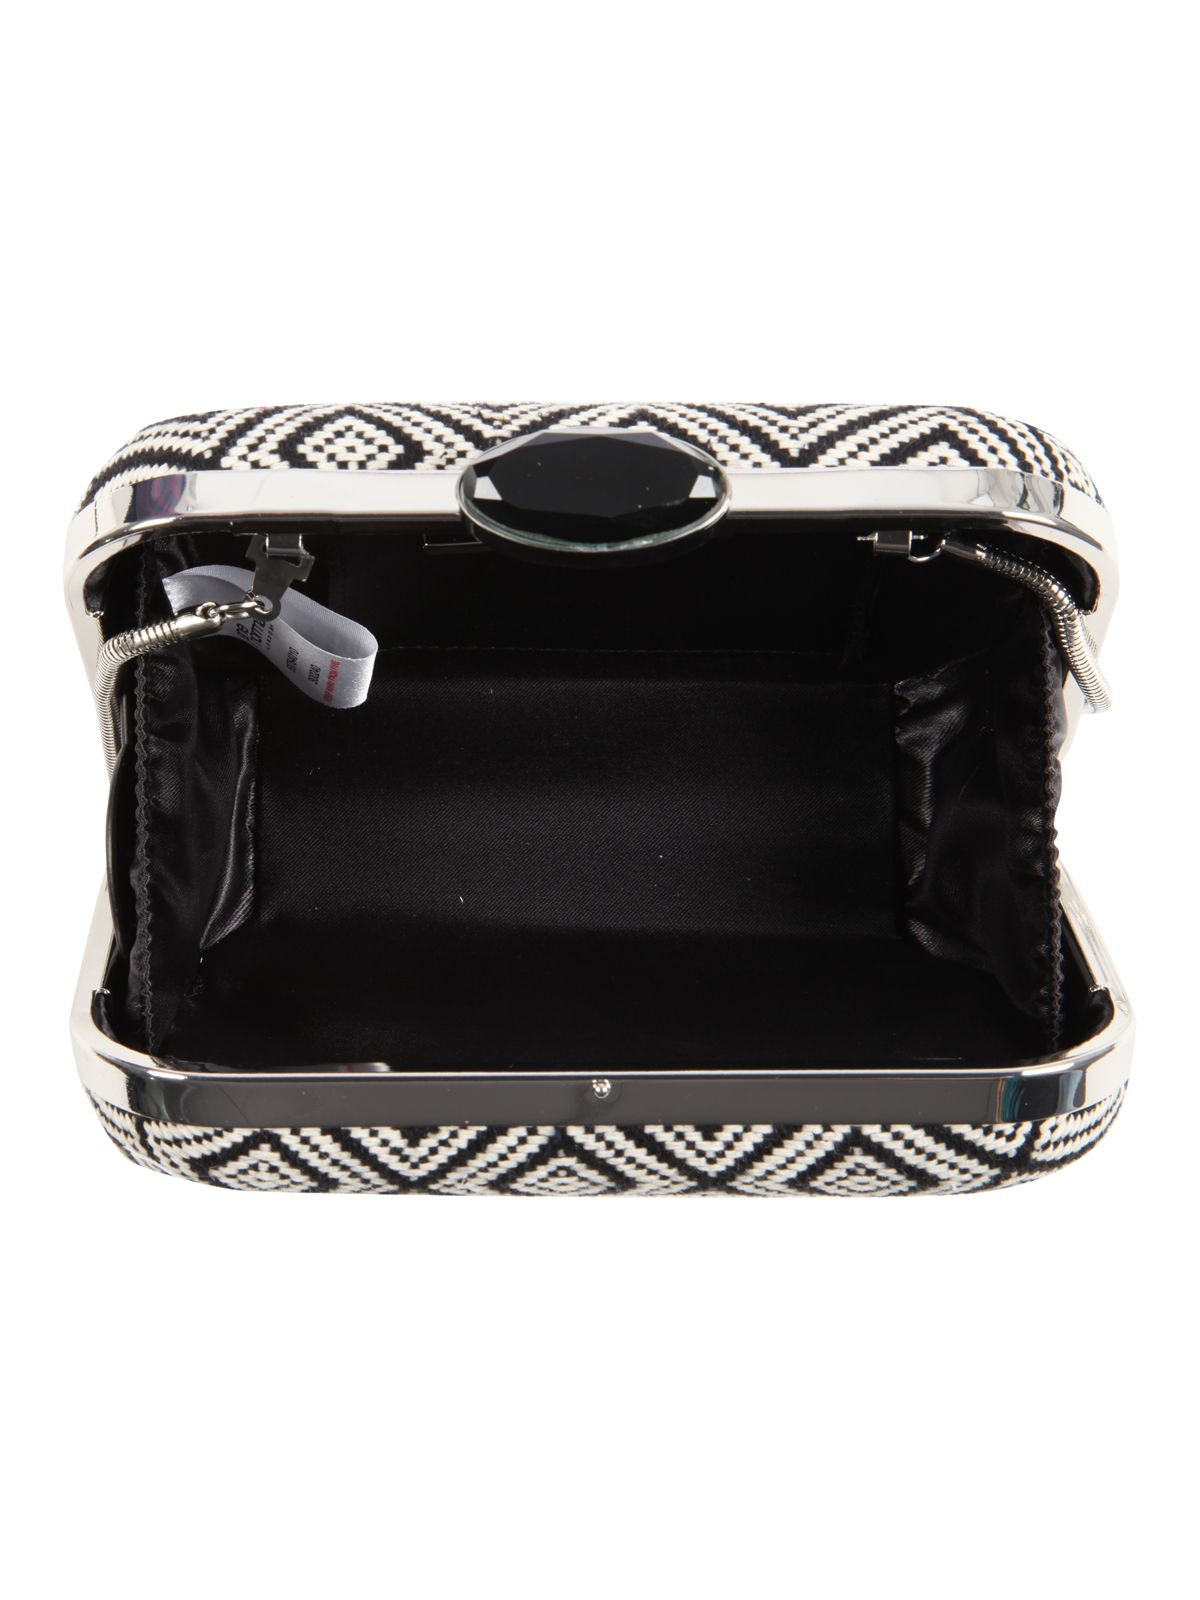 Monochrome Jacquard Box Clutch Bag